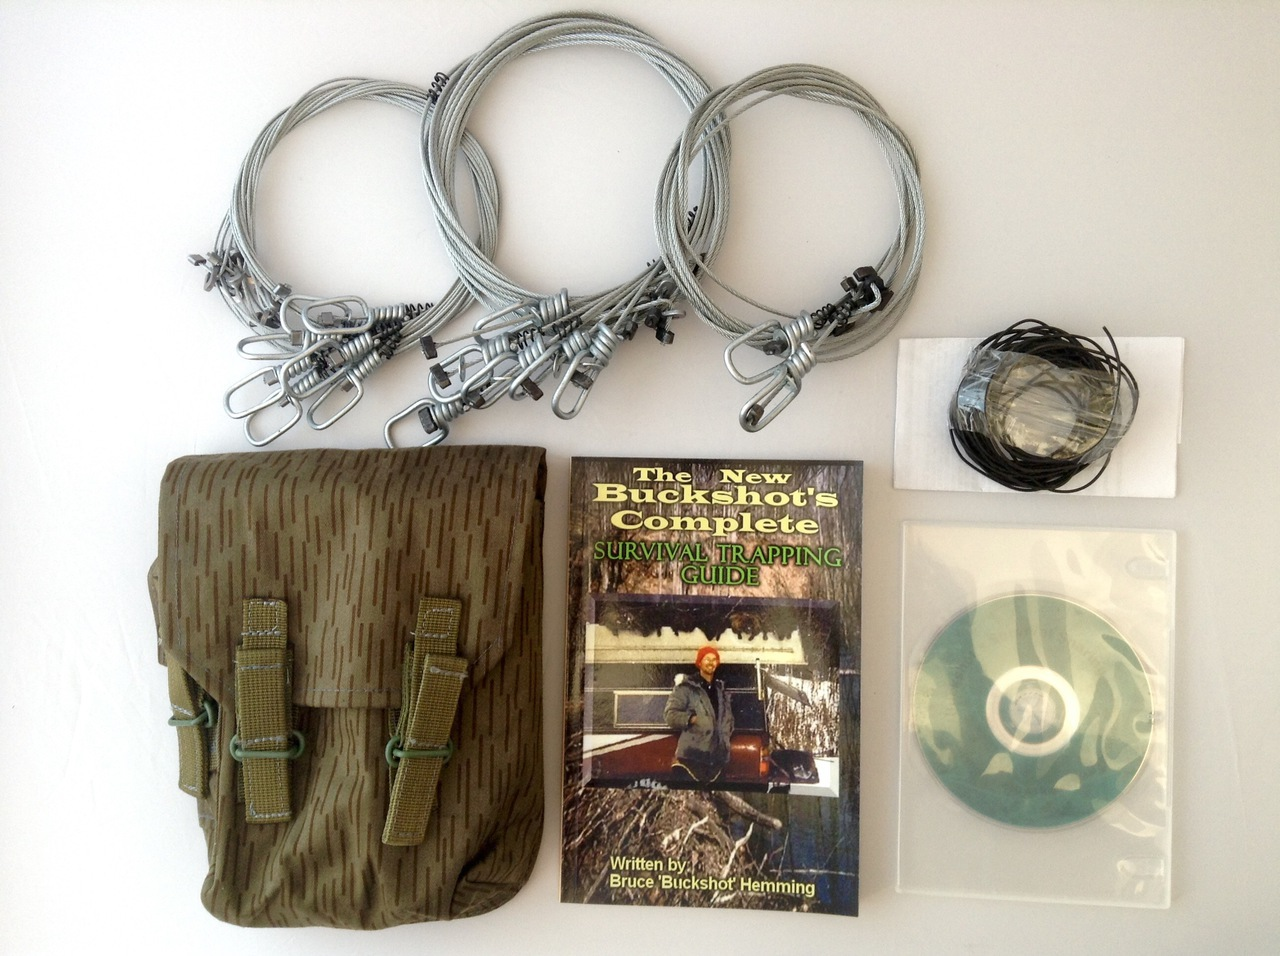 Buckshot's Emergency Snare Kit, Survival Snaring DVD & Buckshot's Complete Survival Trapping Guide